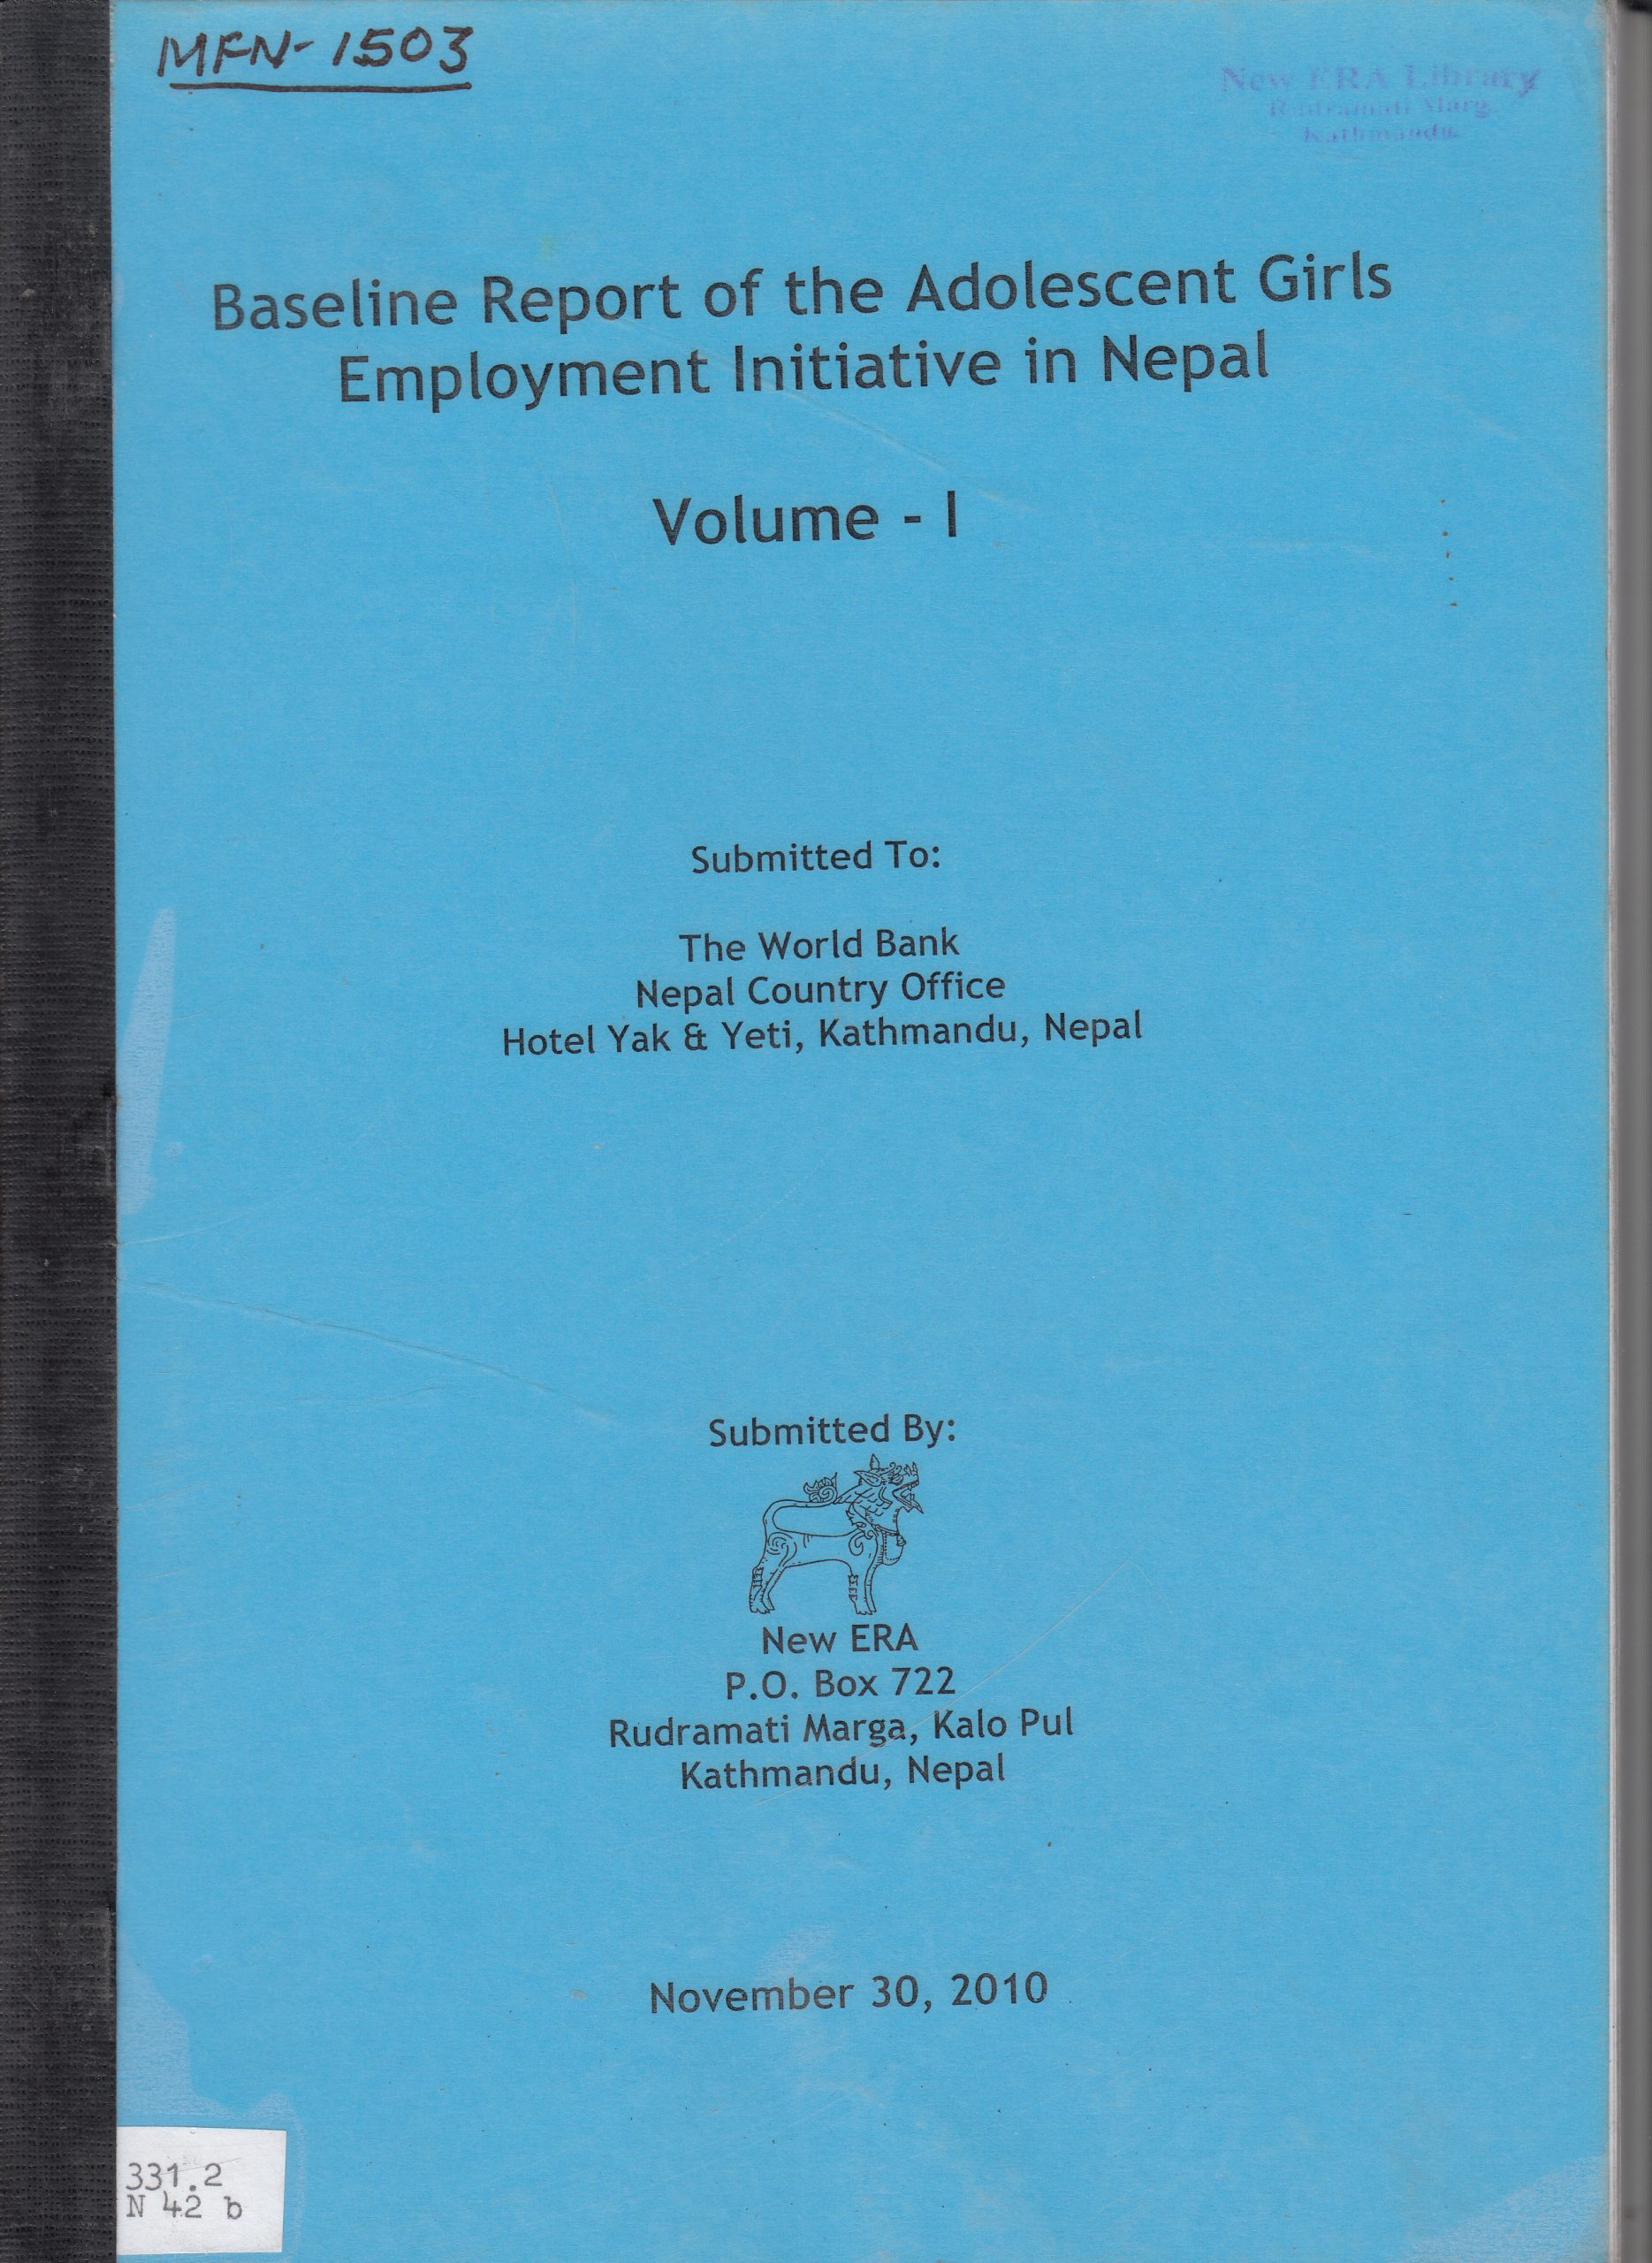 Baseline Survey of the Adolescent Girls Employment Initiative in Nepal